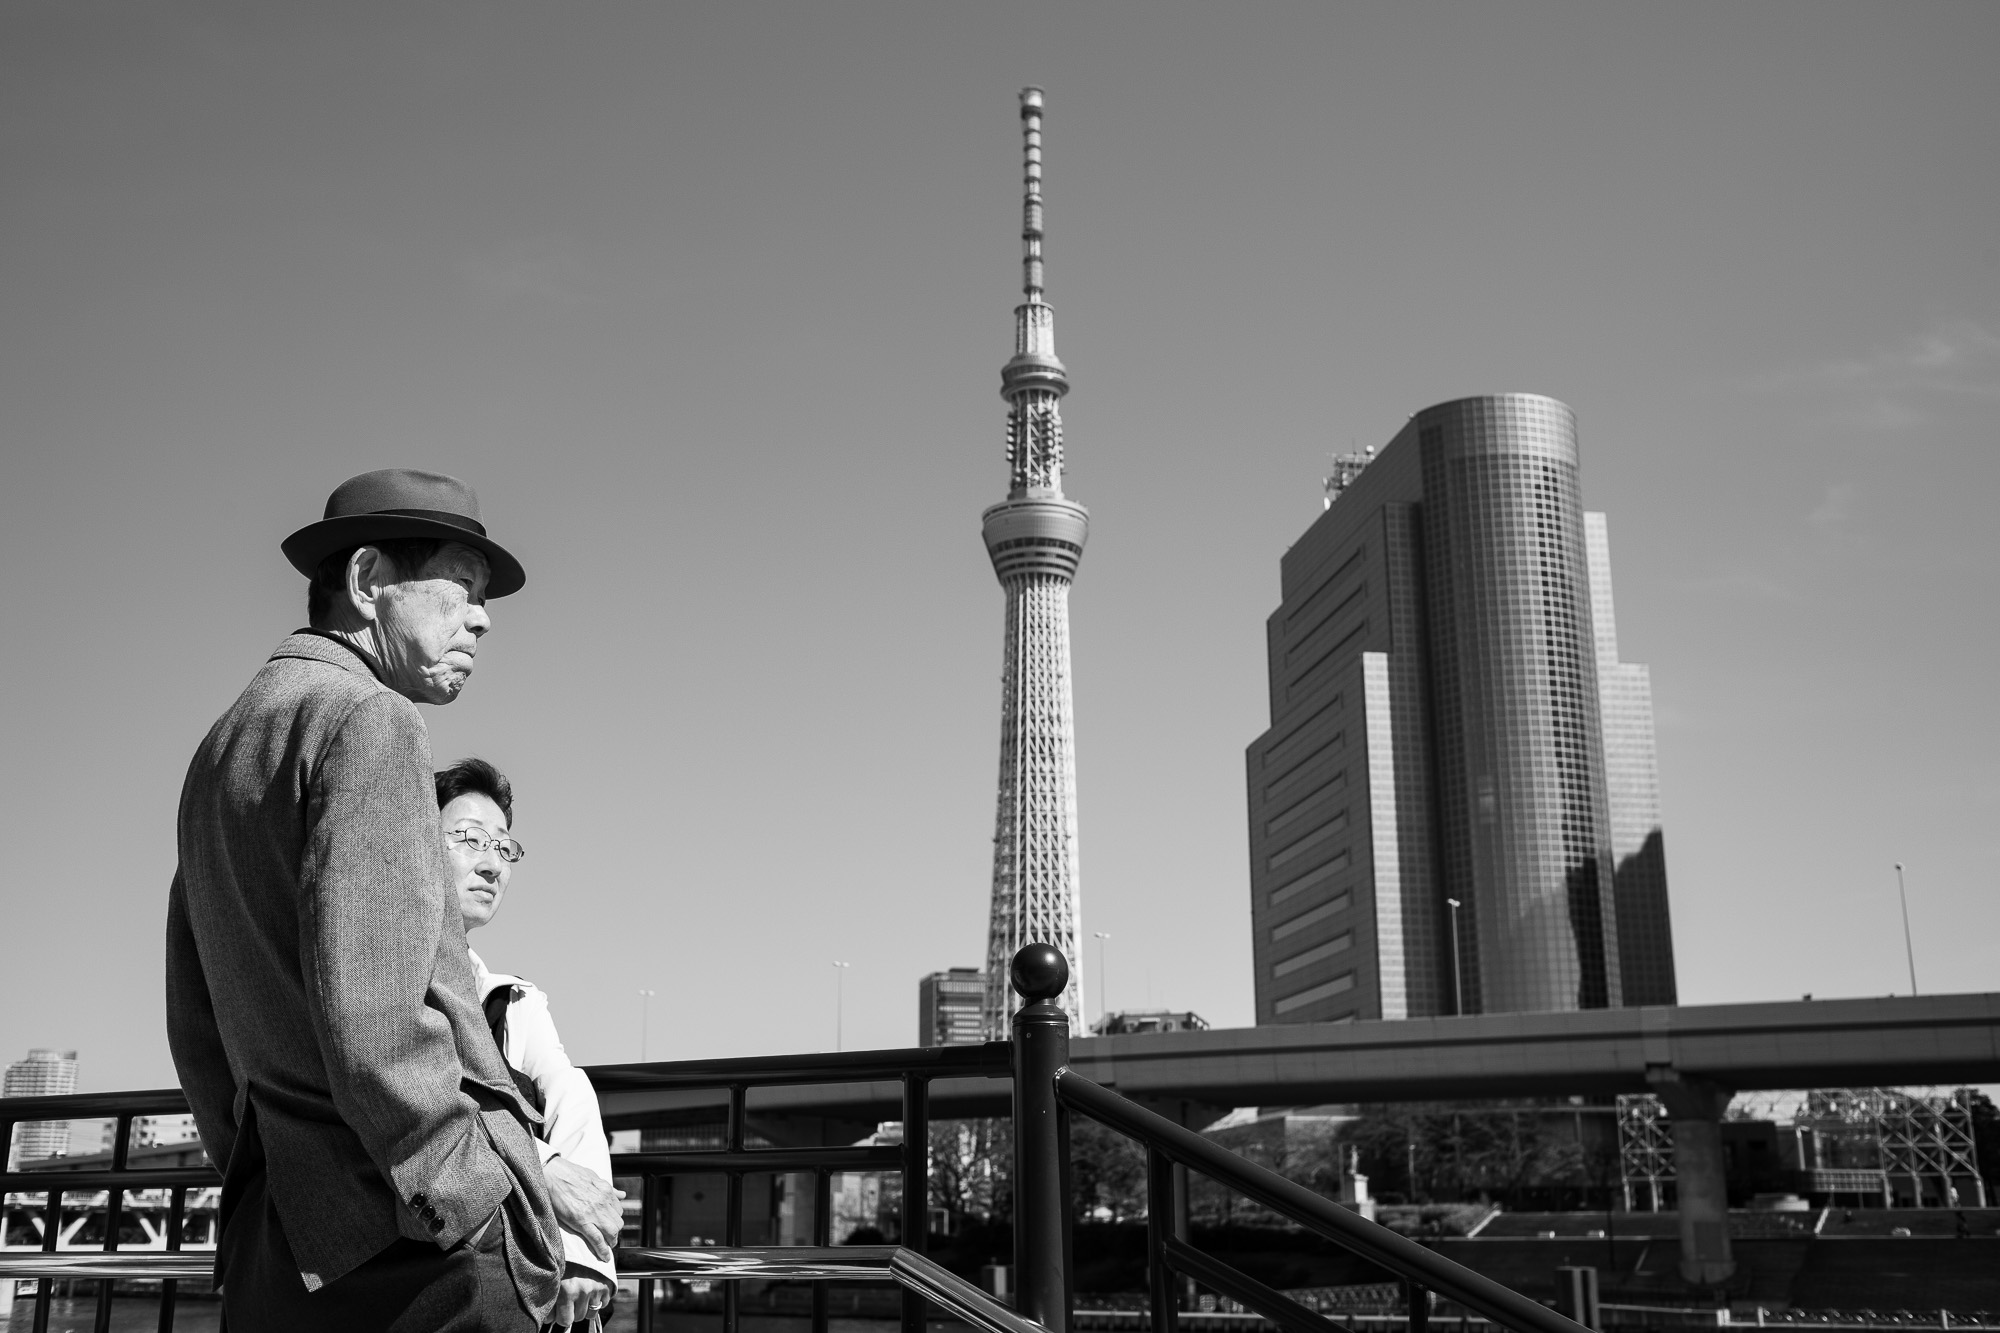 tokyo-now-and-then-2000.jpg